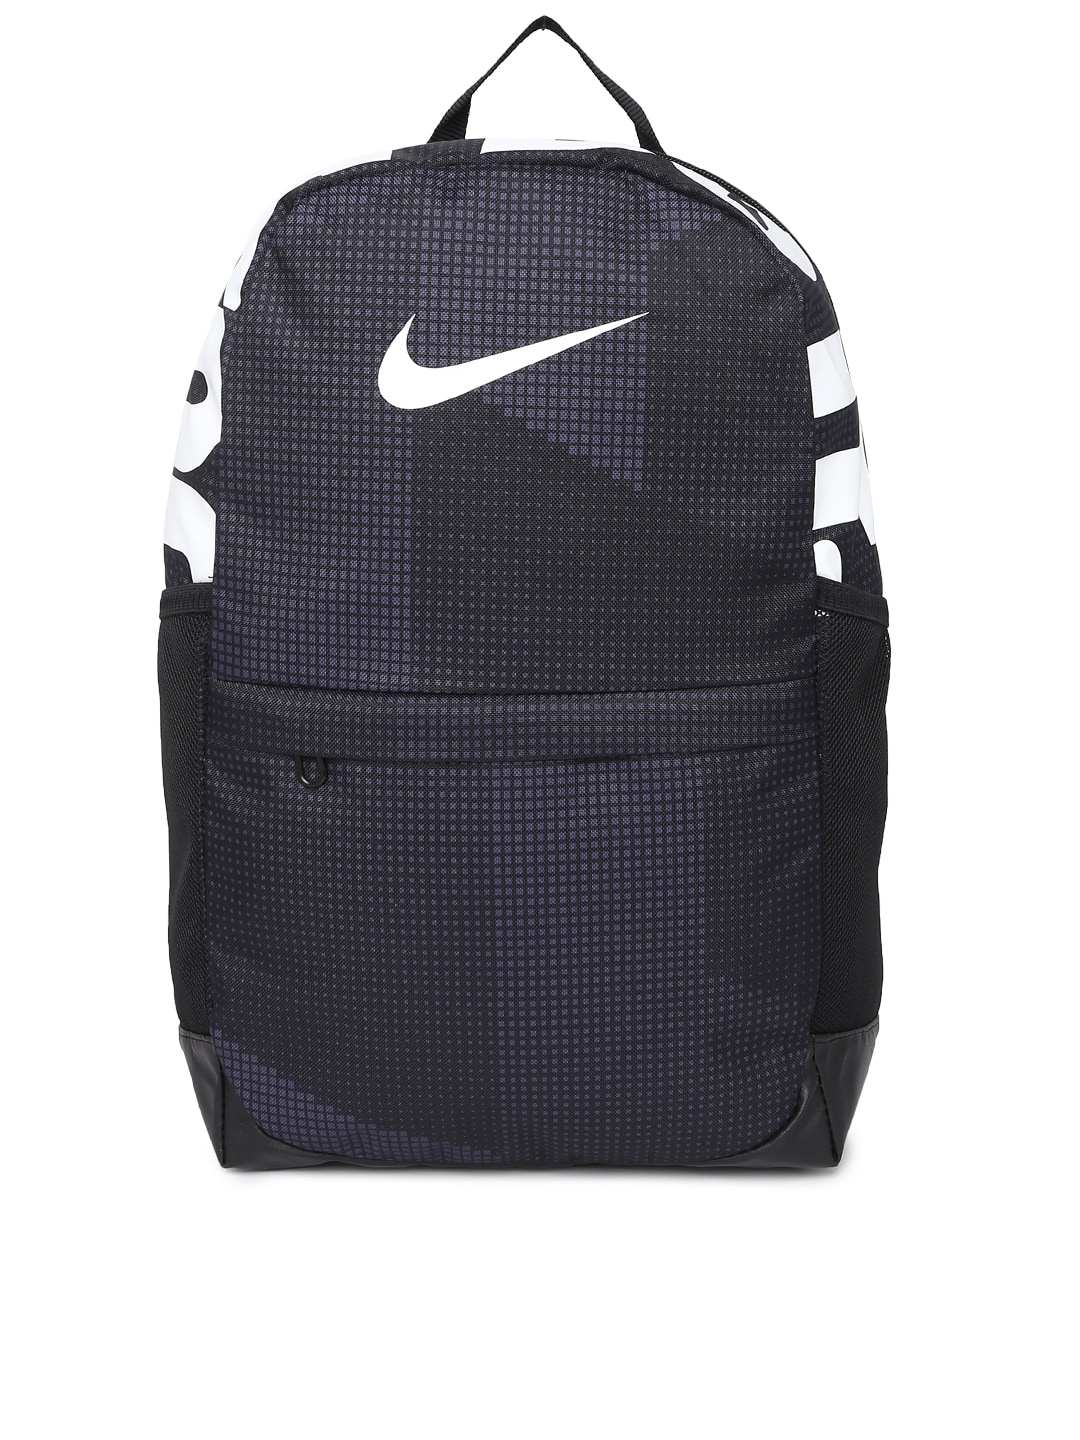 Nike Bags - Buy Nike Bag for Men 62b1b92f83041